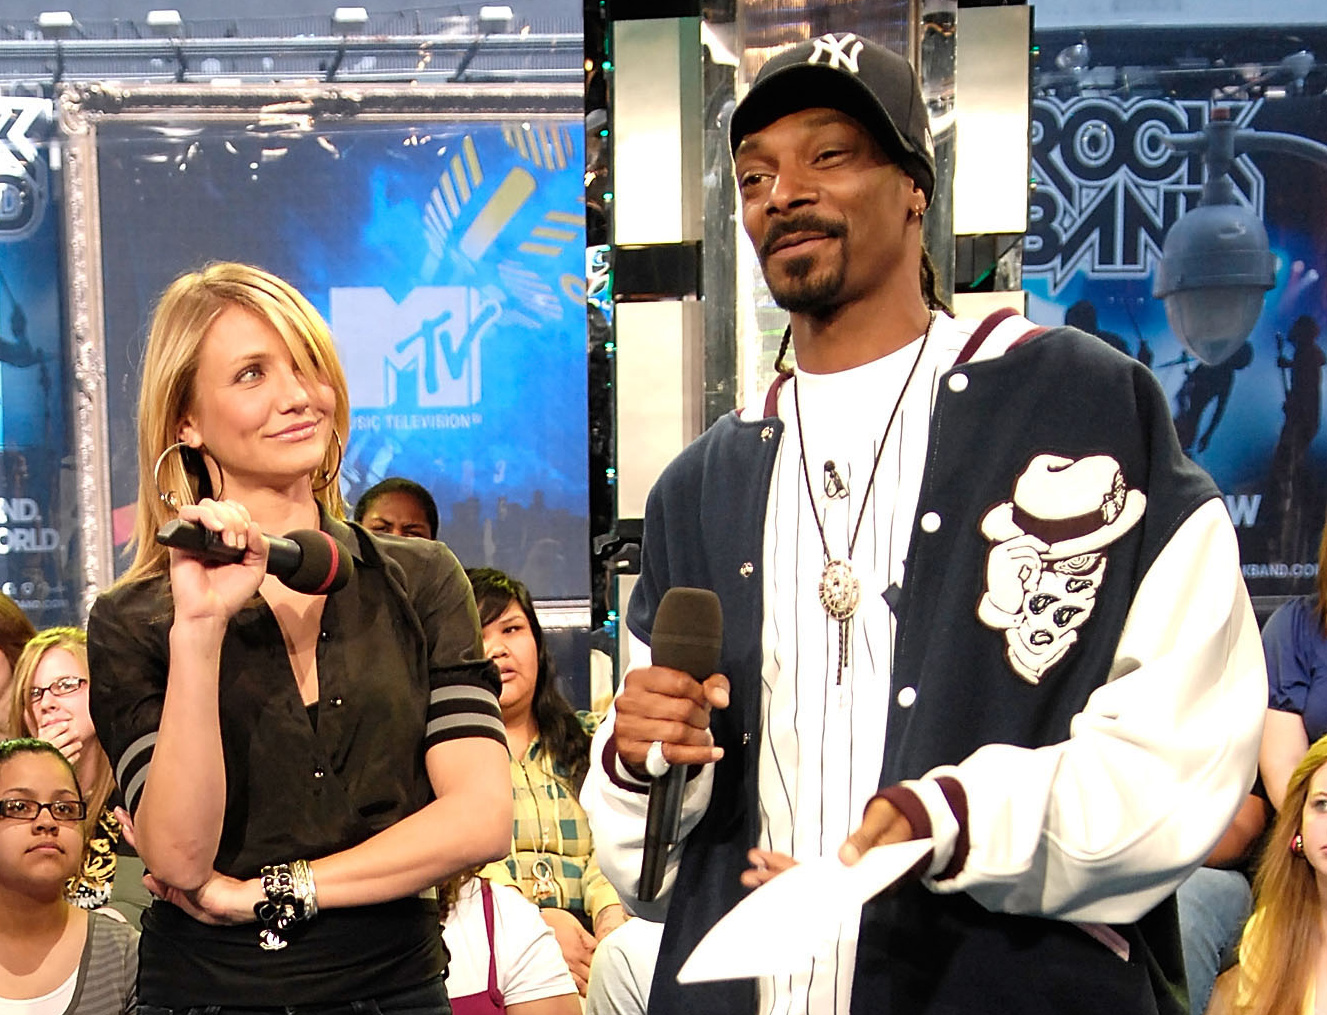 Cameron Diaz and Snoop Dogg went to Long Beach Polytechnic High School together, and the actress has said that she probably bought drugs from the rapper at some point.